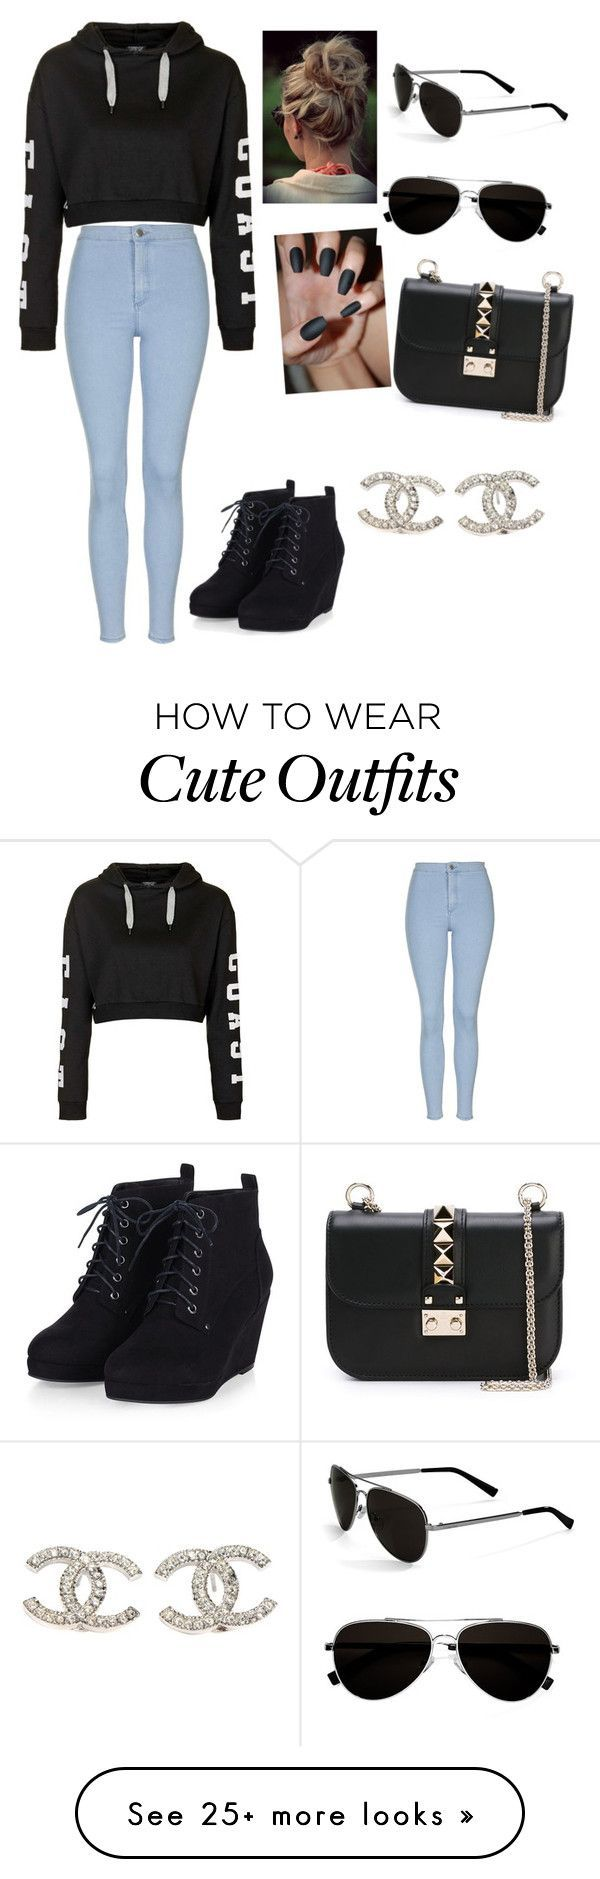 """""""Cute outfit"""" by babygirltaetae on Polyvore featuring Topshop, Calvin Klein, Valentino, Chanel, women's clothing, women, female, woman, misses and…"""